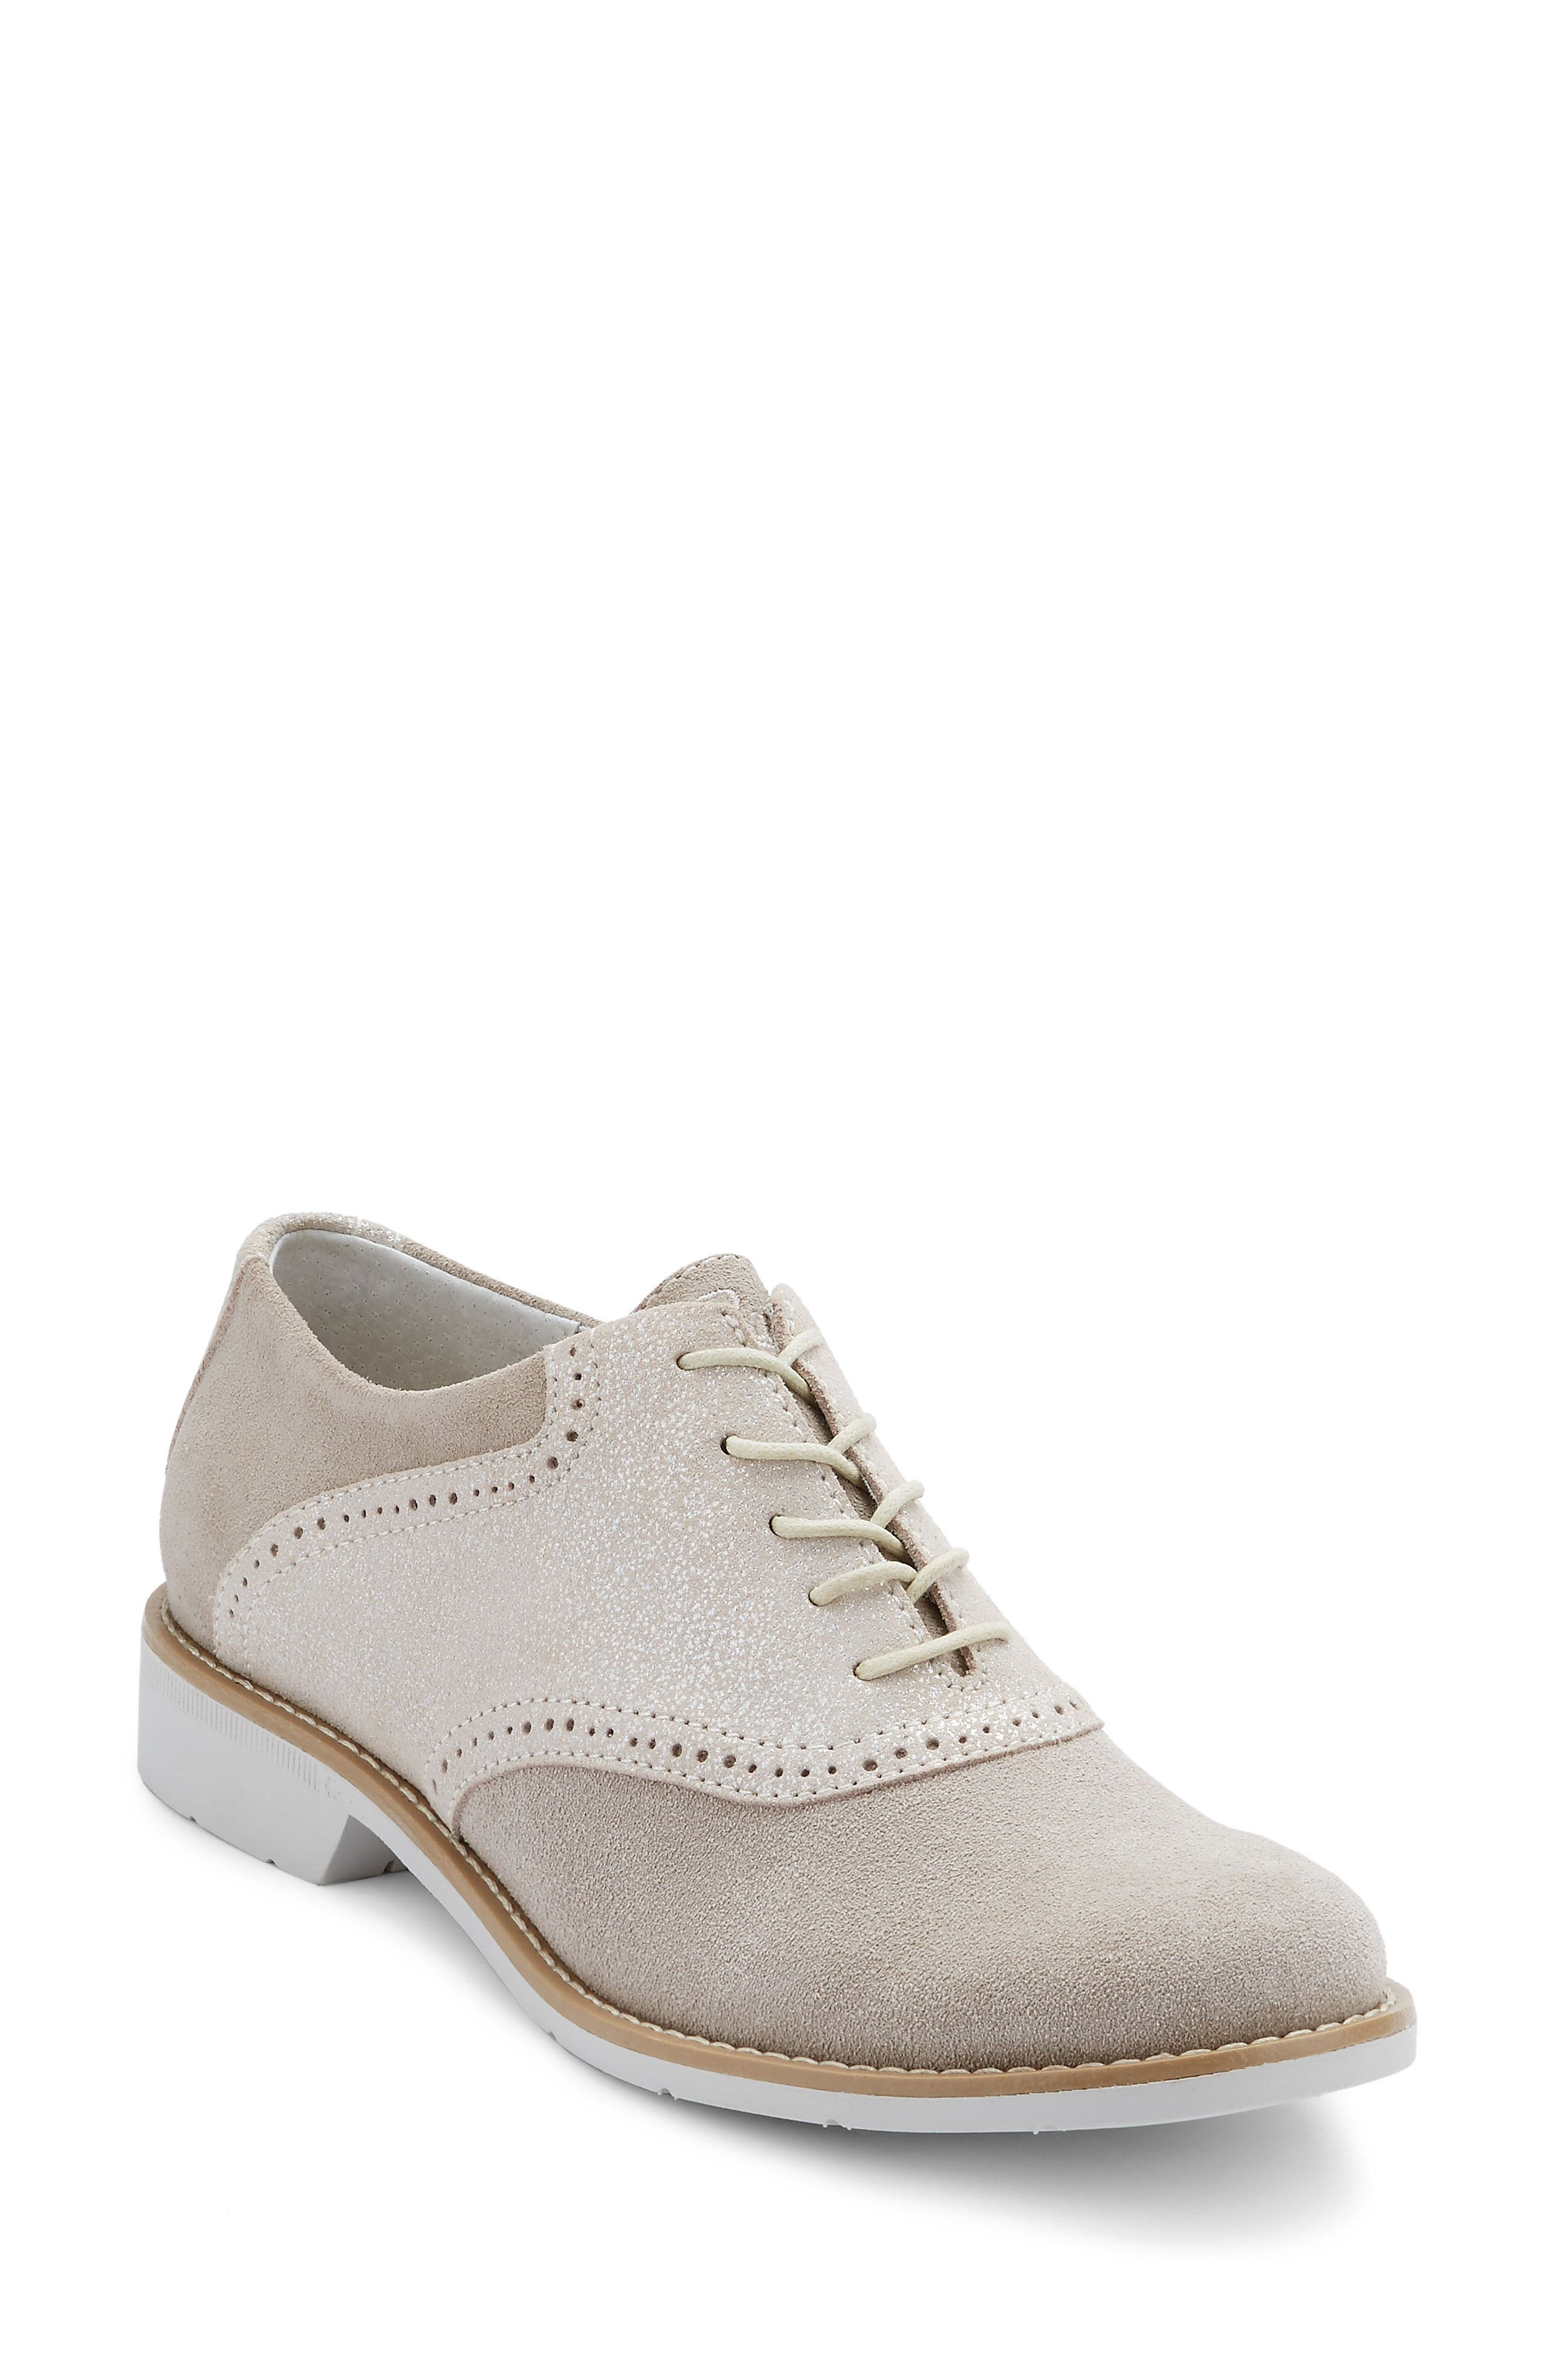 G.H. Bass and Co. Dora Lace-Up Oxford,                         Main,                         color, Soft Grey/ Silver Suede